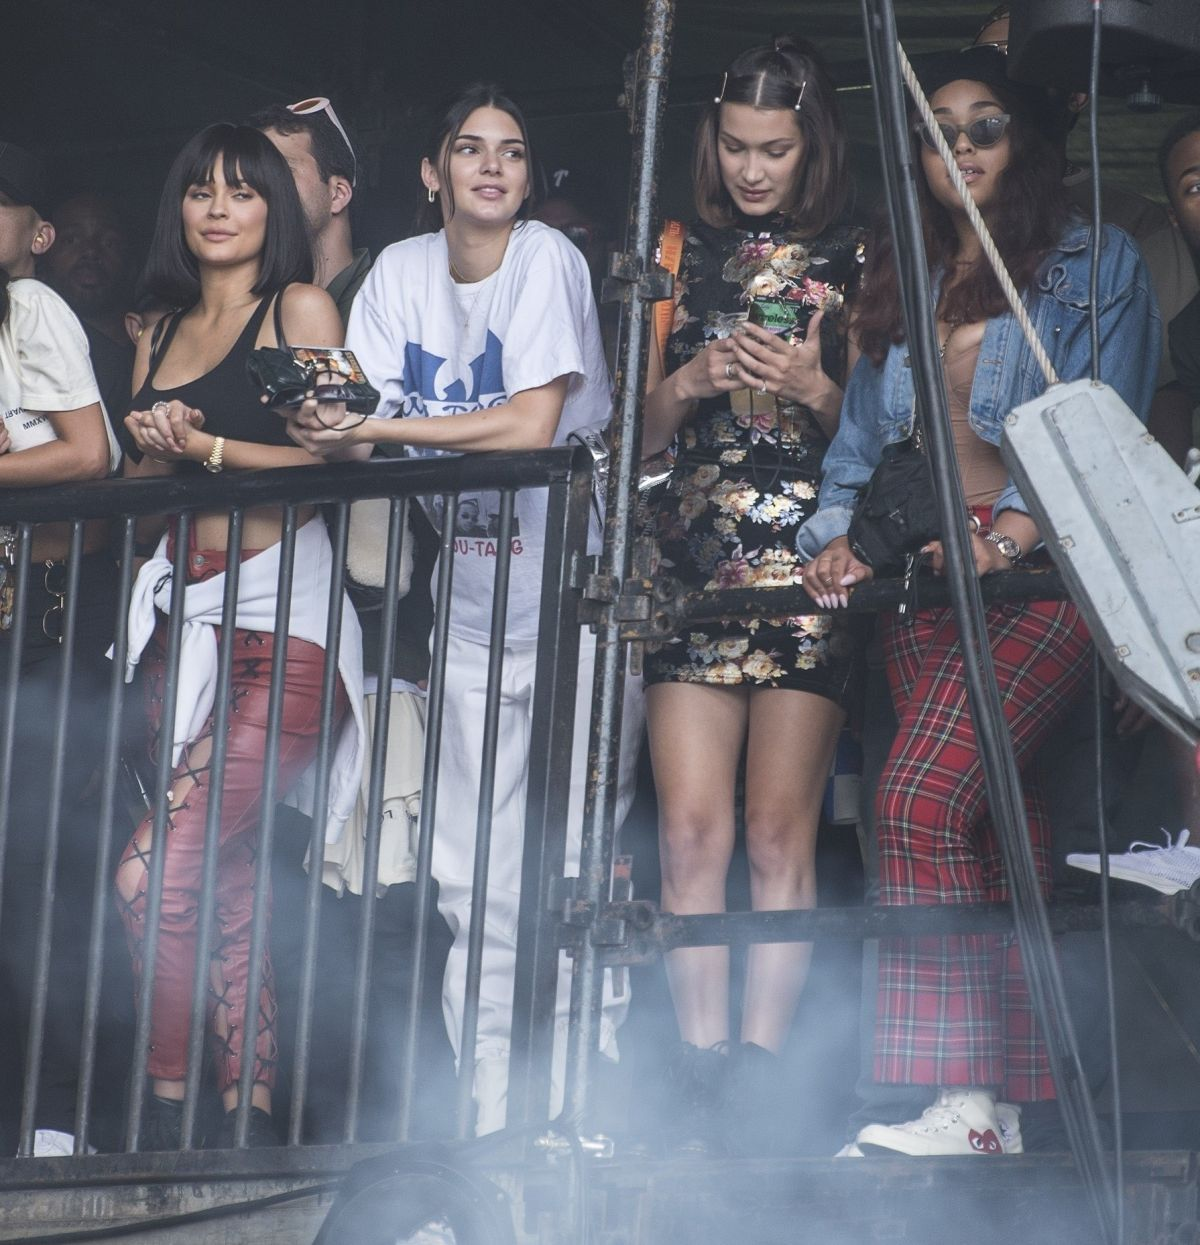 Kendall And Kylie Jenner Bella Hadid At Wireless Festival In London 07 08